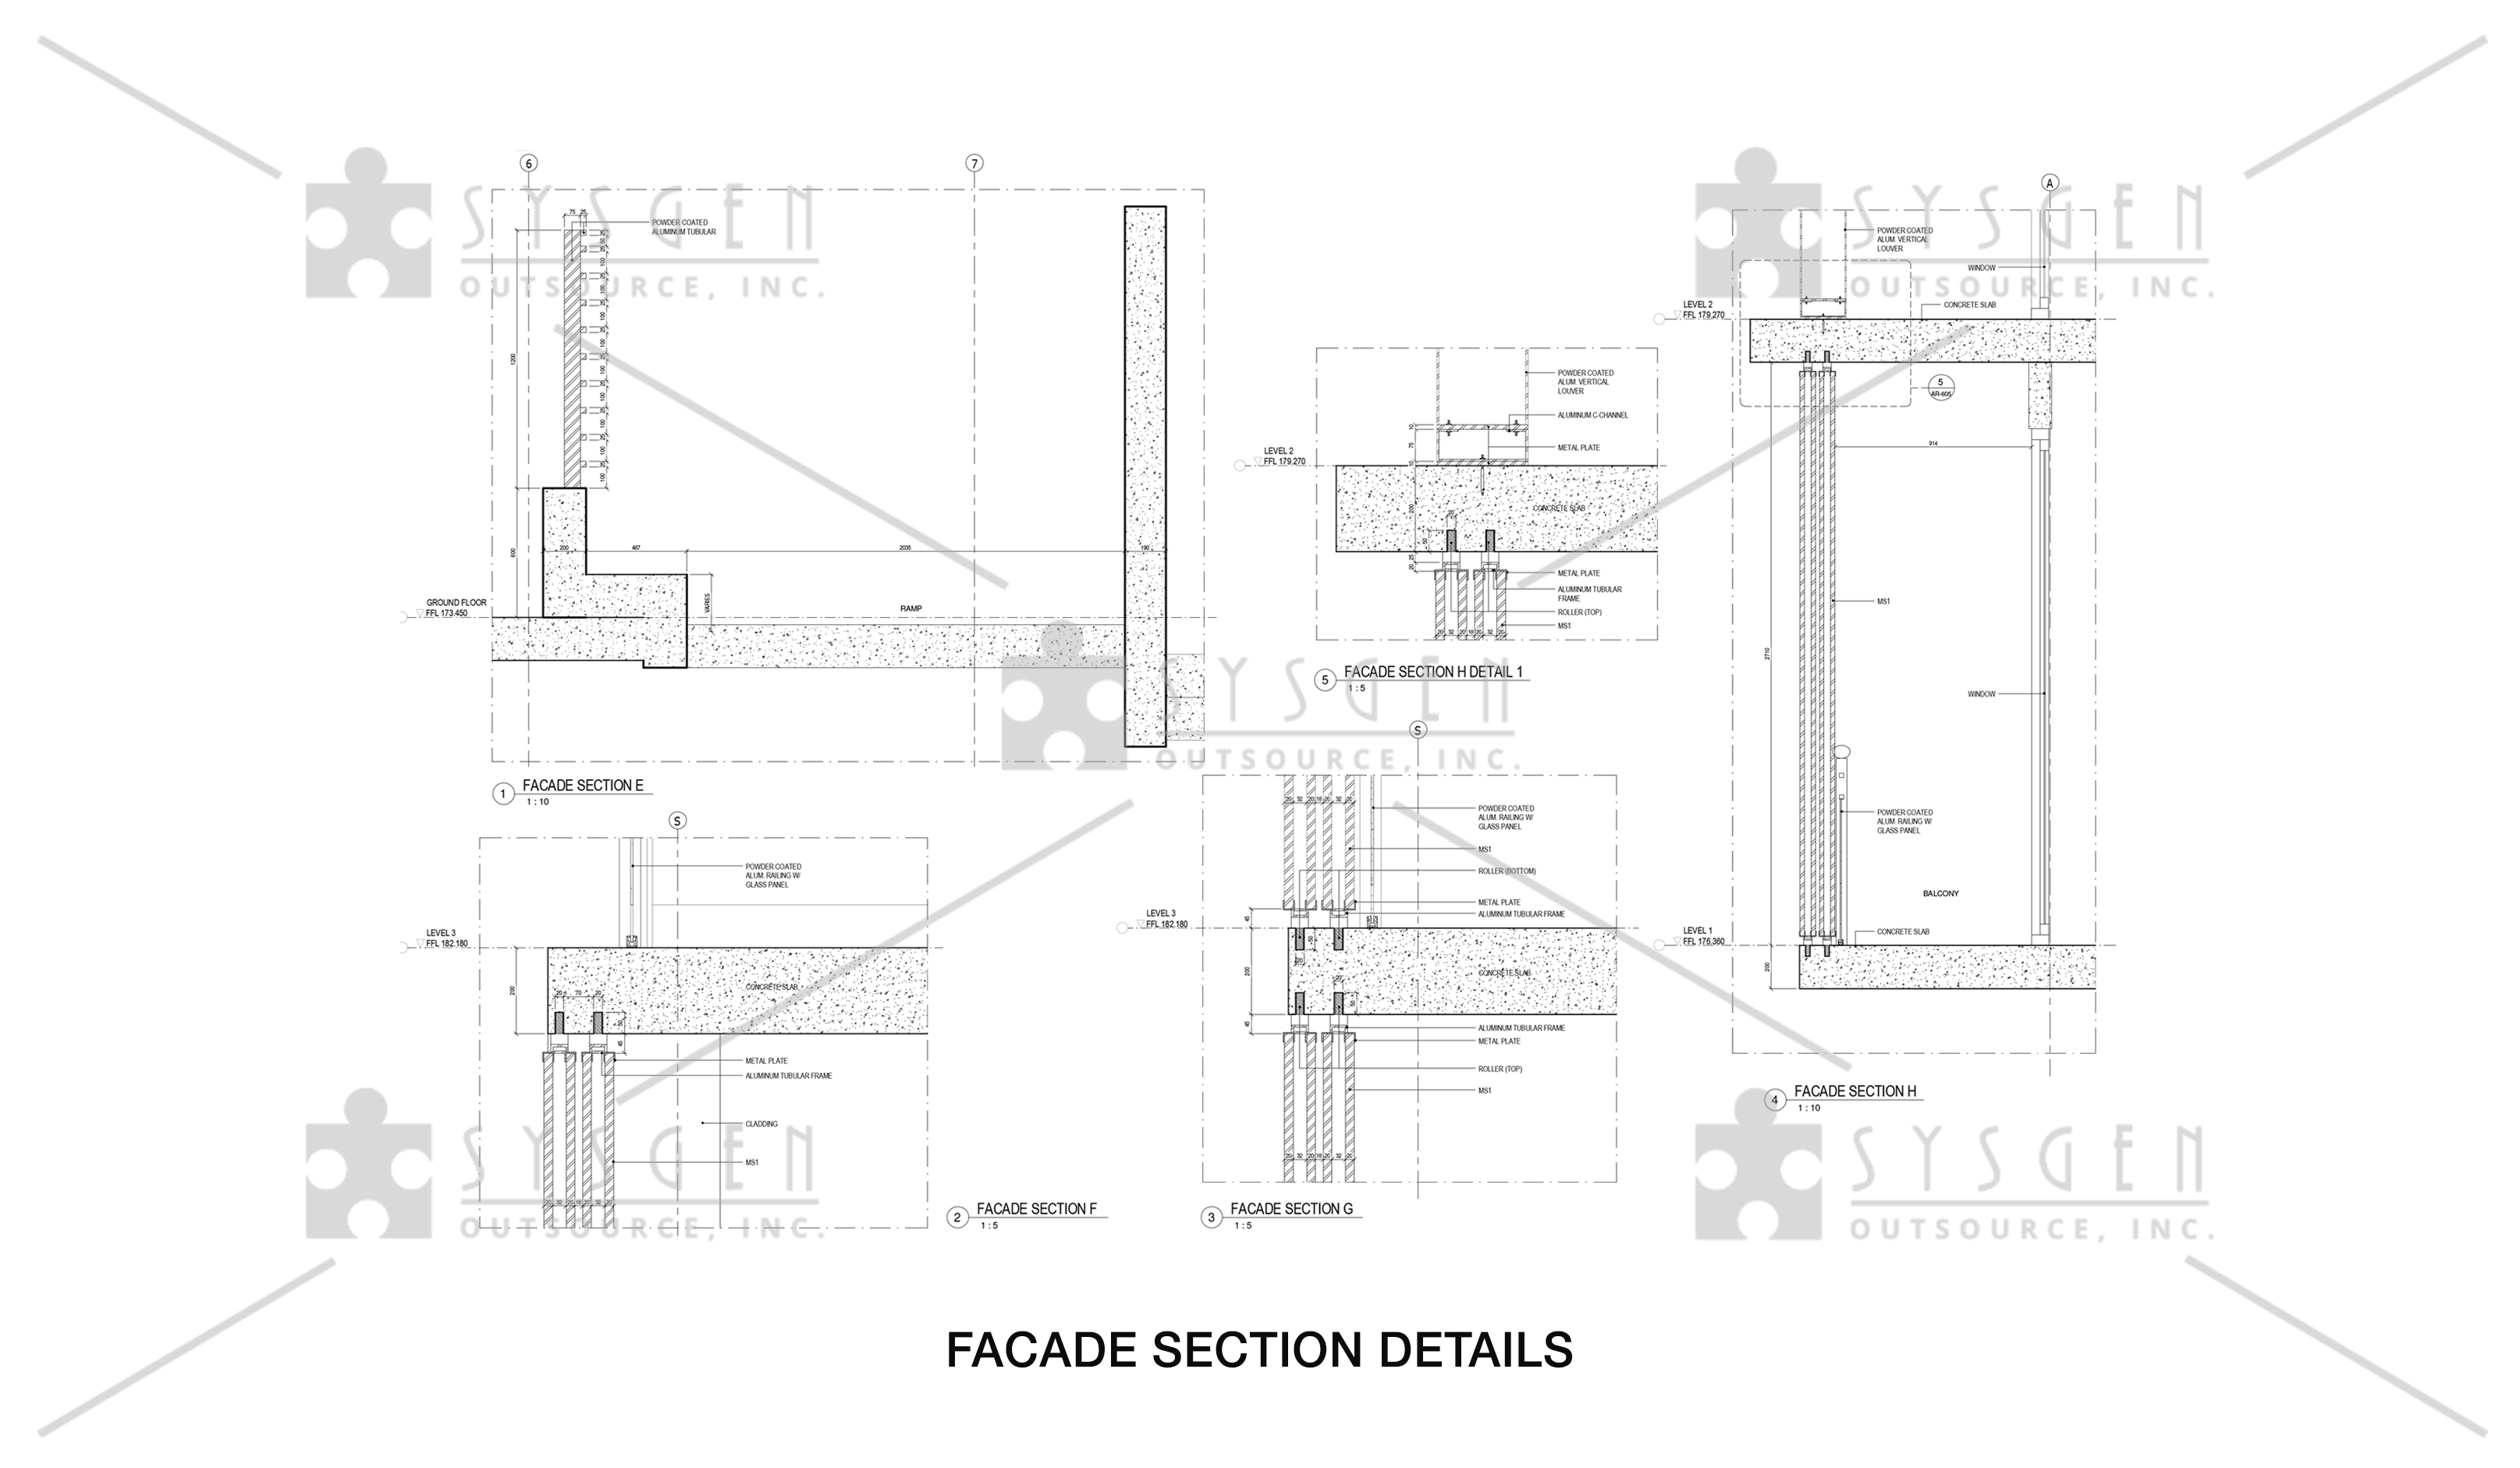 sysgen-outsource-cad-outsourcing-services-cad-conversion-revit-4-storey-residential23